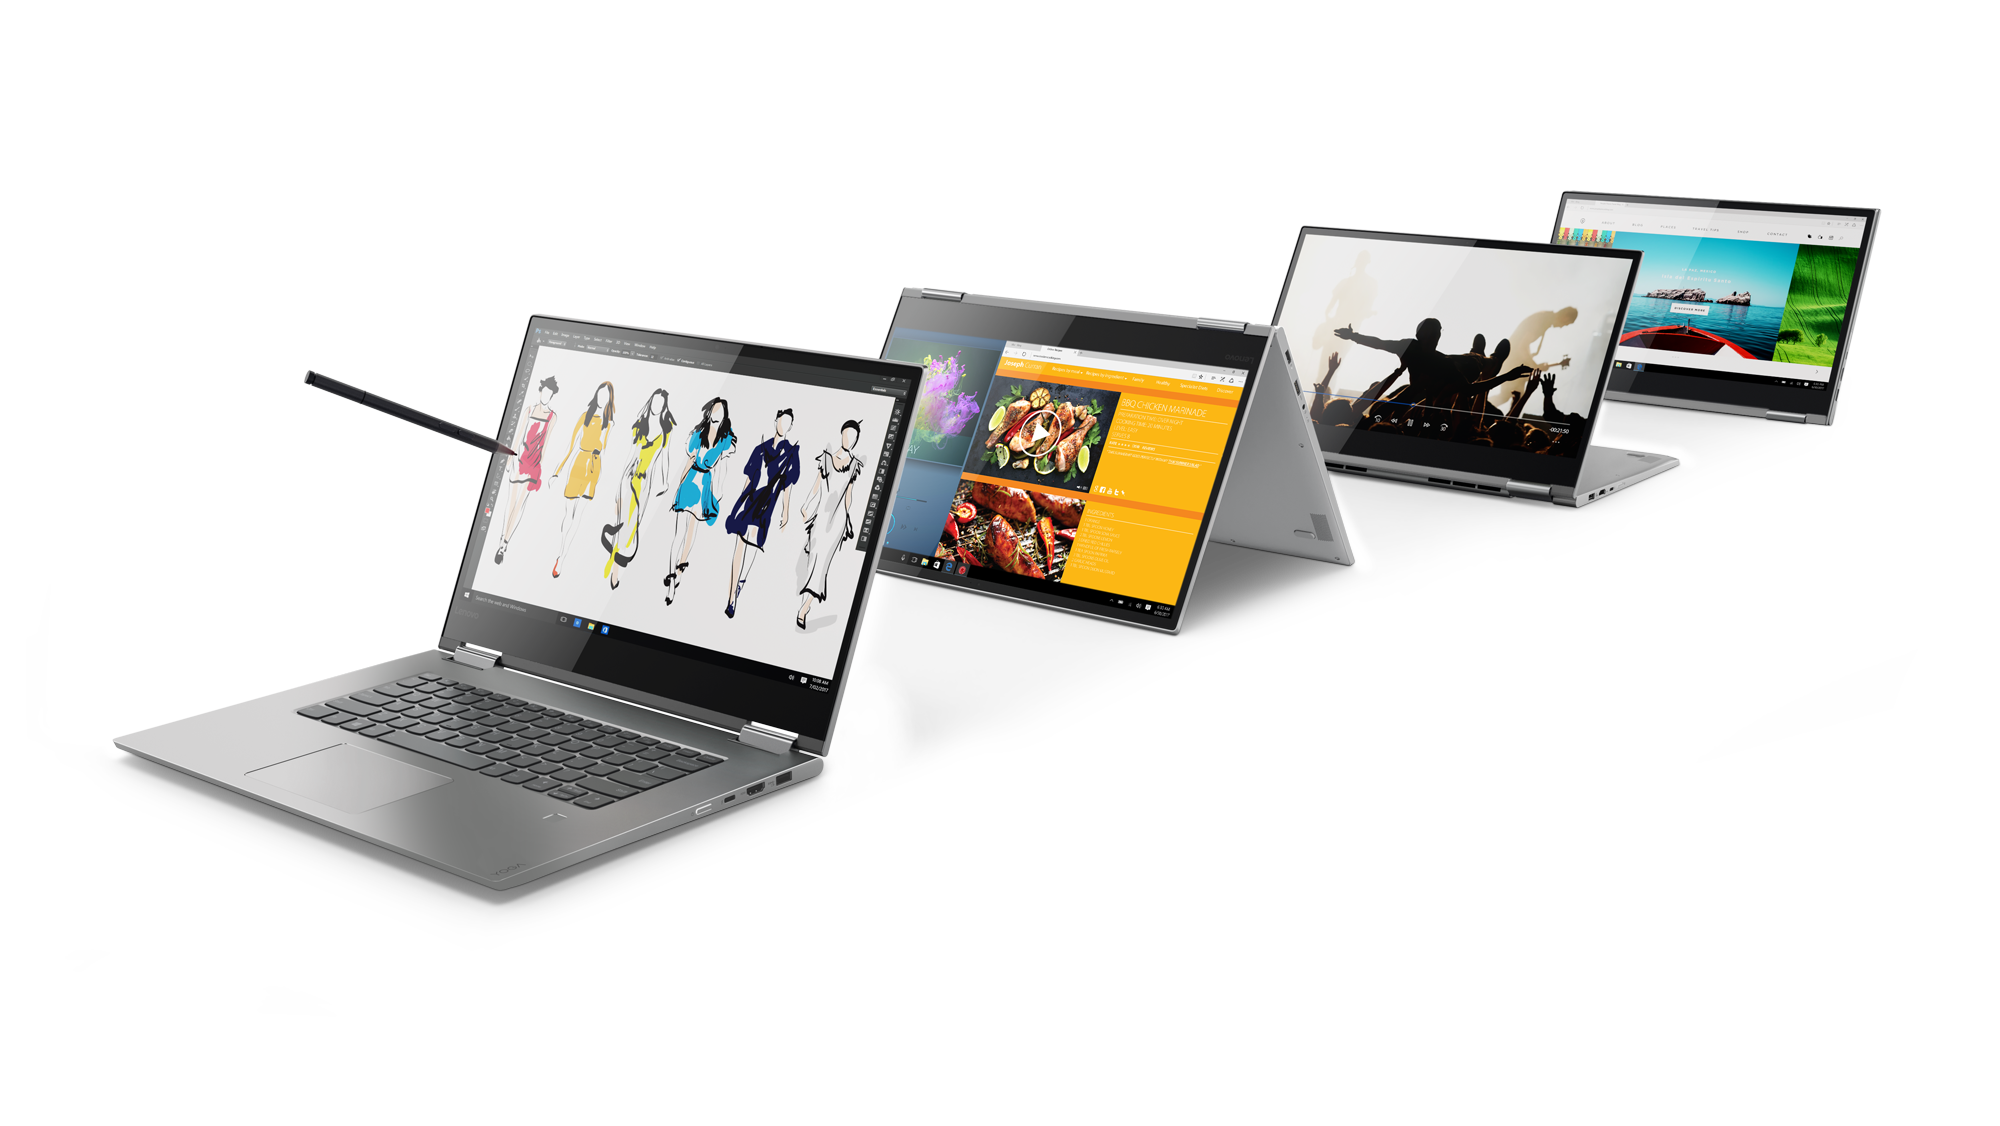 May 22, · The result is a 2-in-1 that's desirable as well as powerful and versatile. Related: Best laptops Lenovo Yoga – Design and build. While some may find the lack of a design revamp Author: Simon Osborne-Walker.